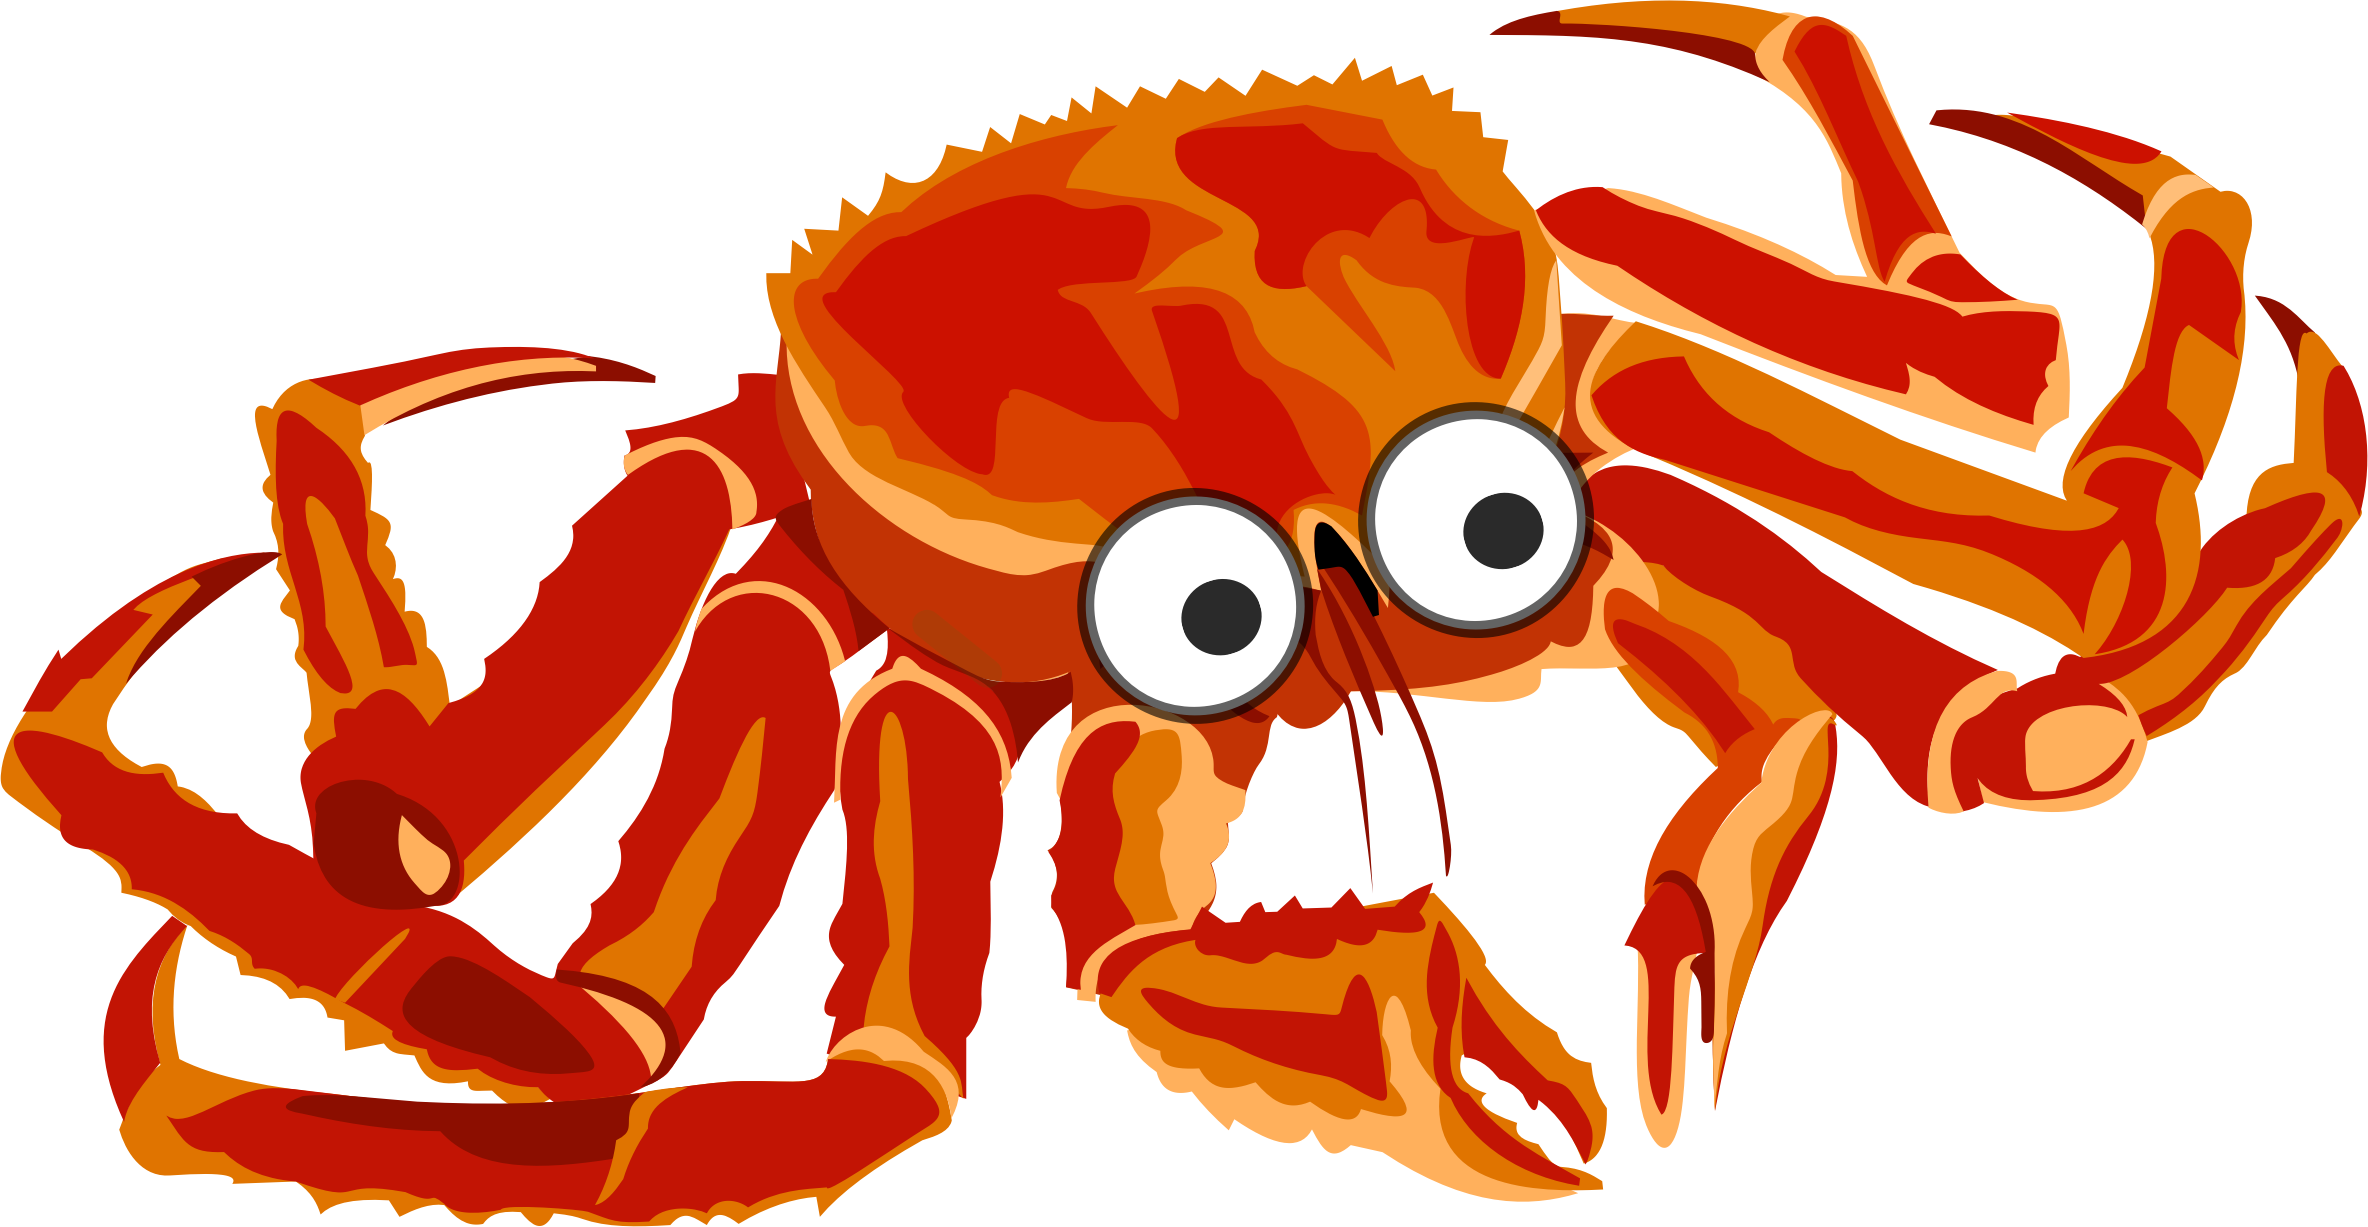 2368x1227 Cartoon Crab 2 Icons Png